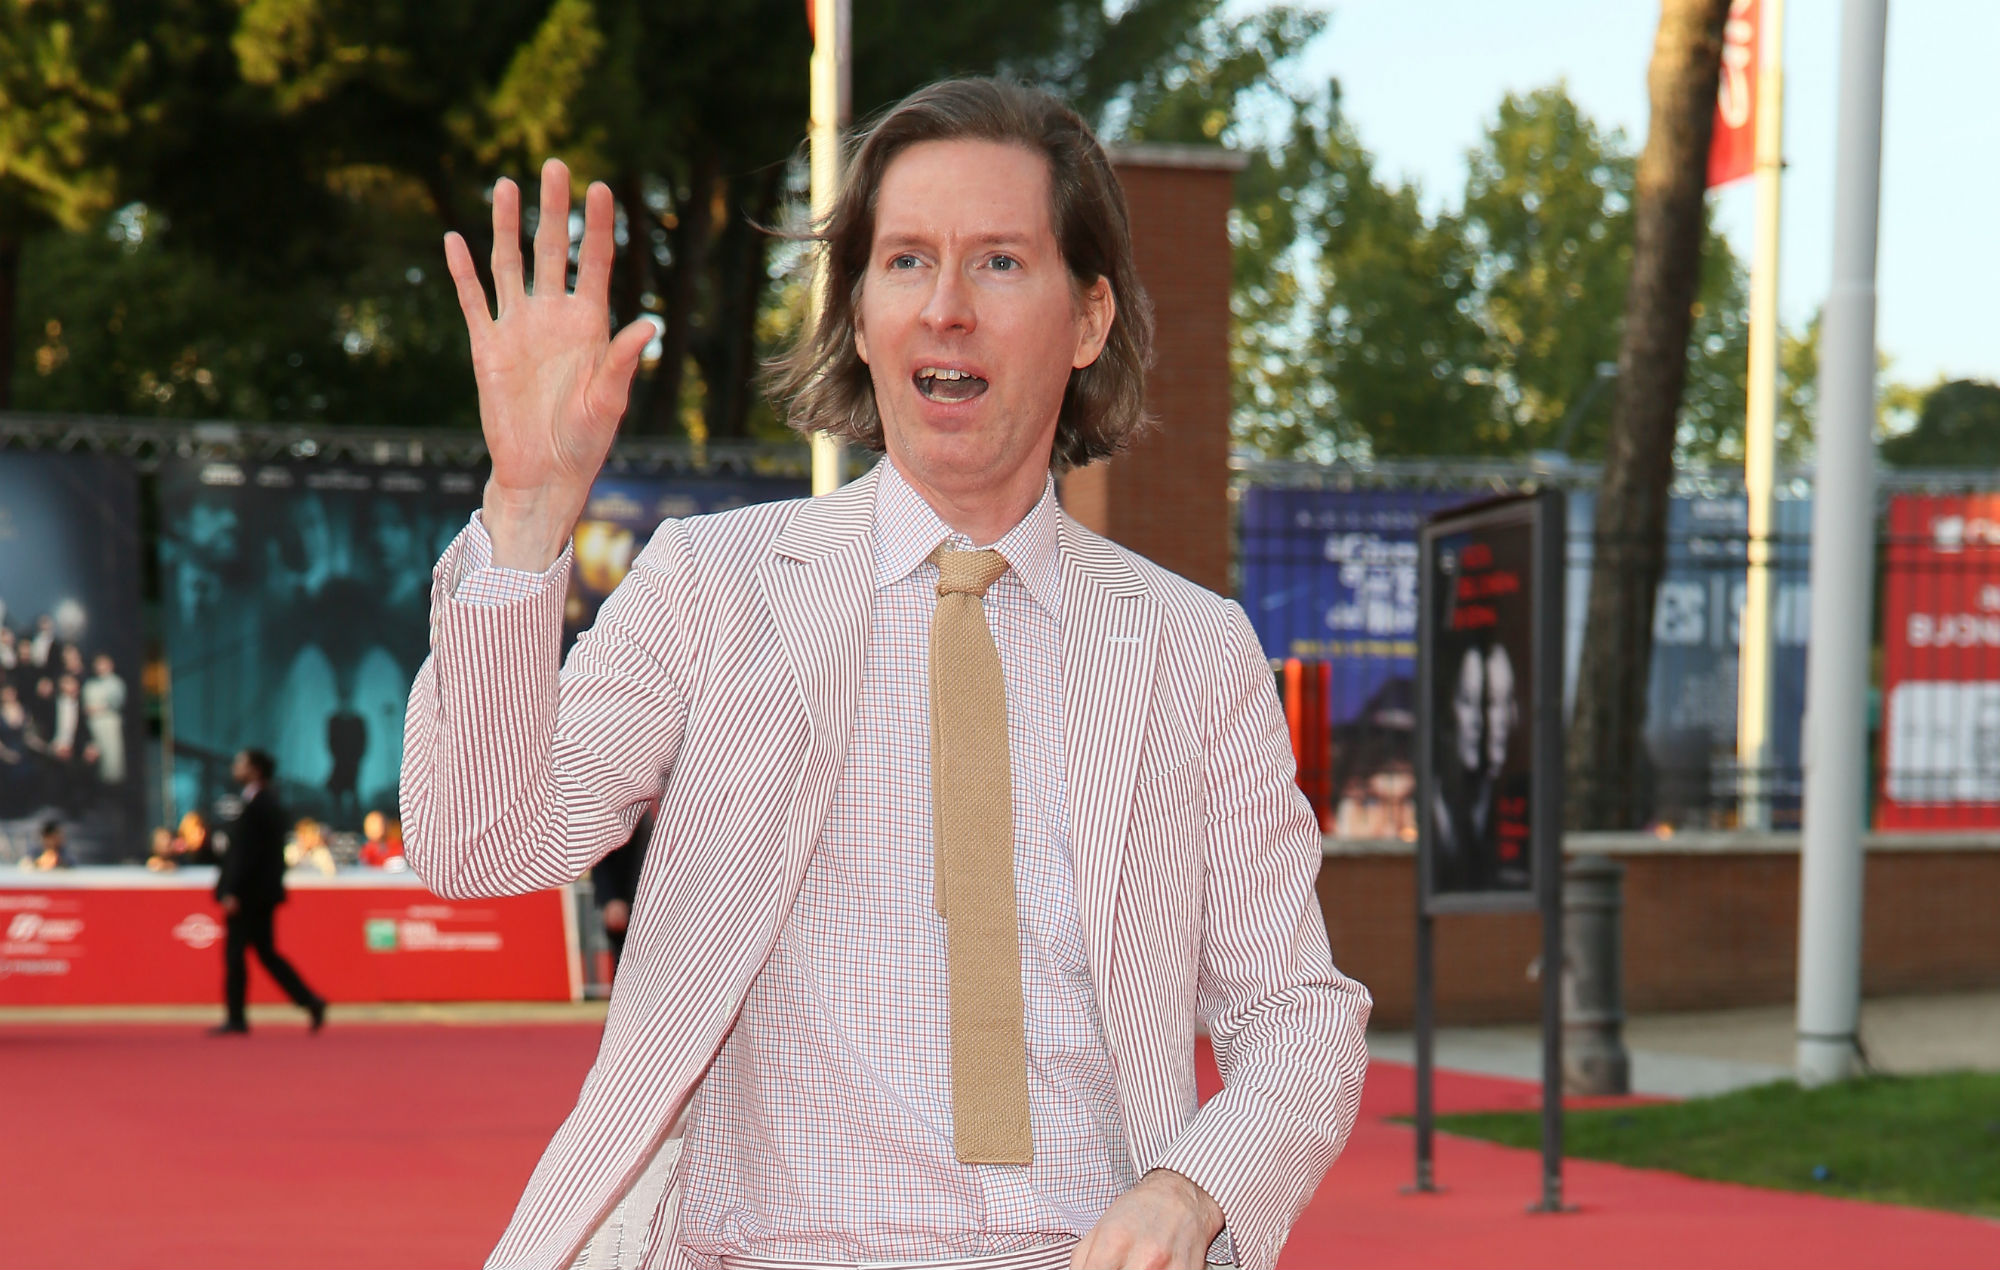 Wes Anderson's next film 'The French Dispatch' delayed | NME